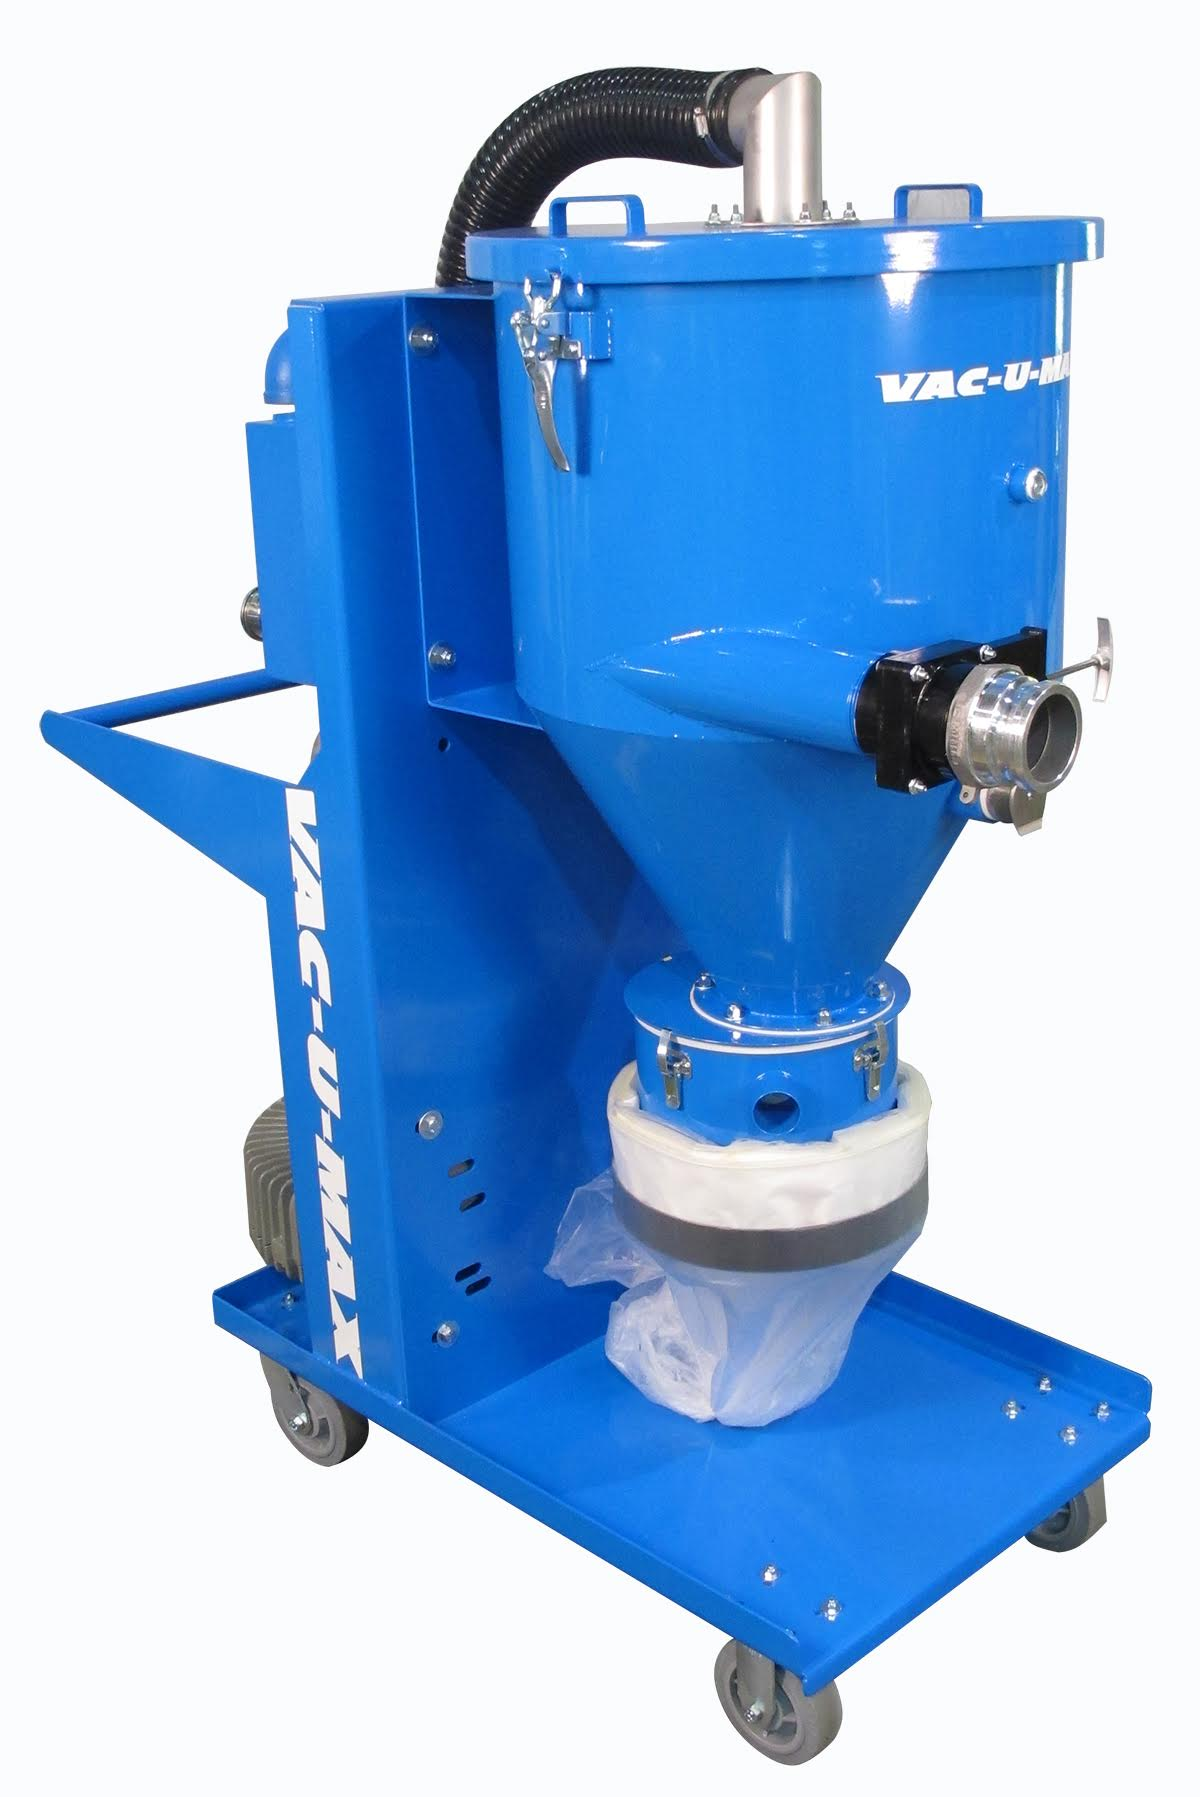 VAC-U-MAX Exhibits Conveying Systems at IBIE 2016